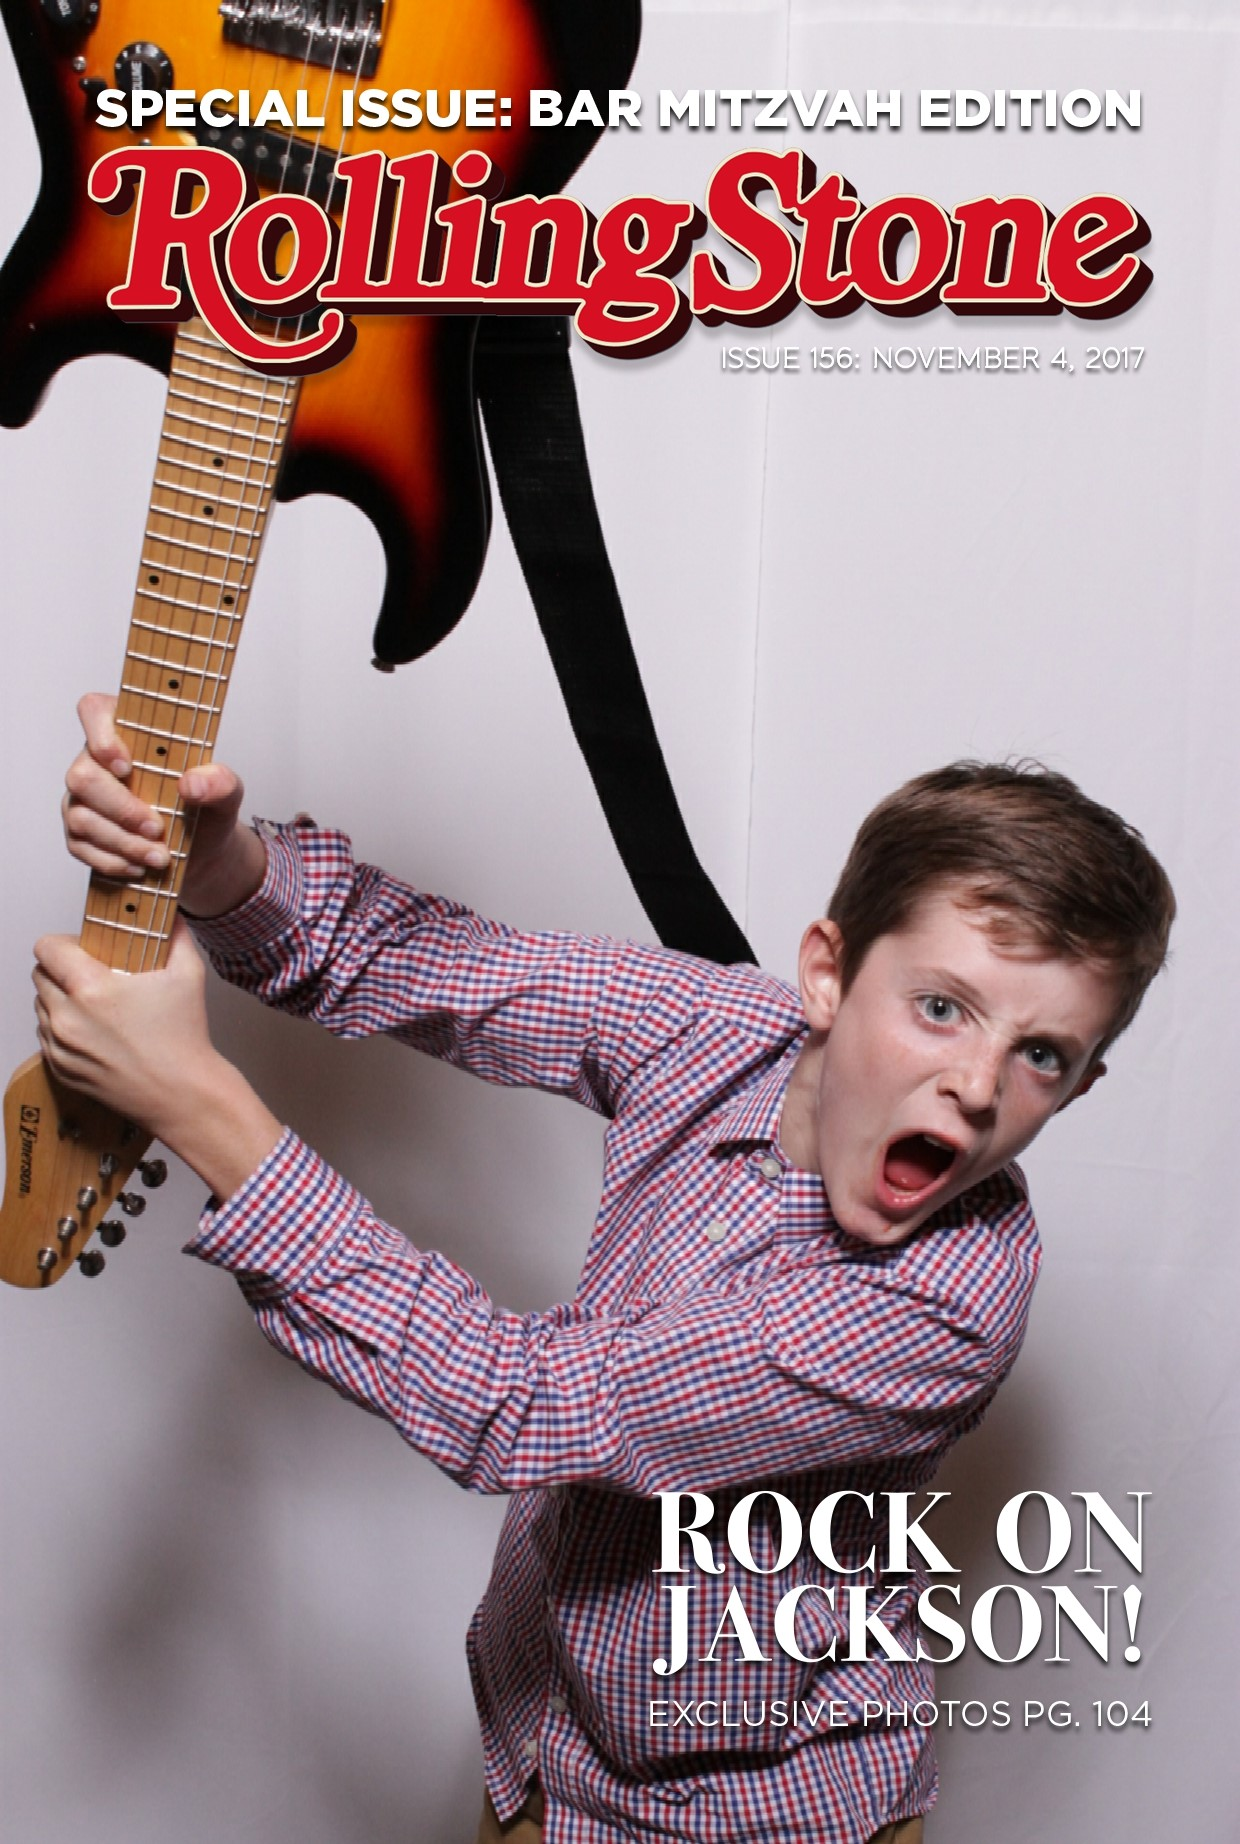 Magazine Cover Photo Booth.jpg